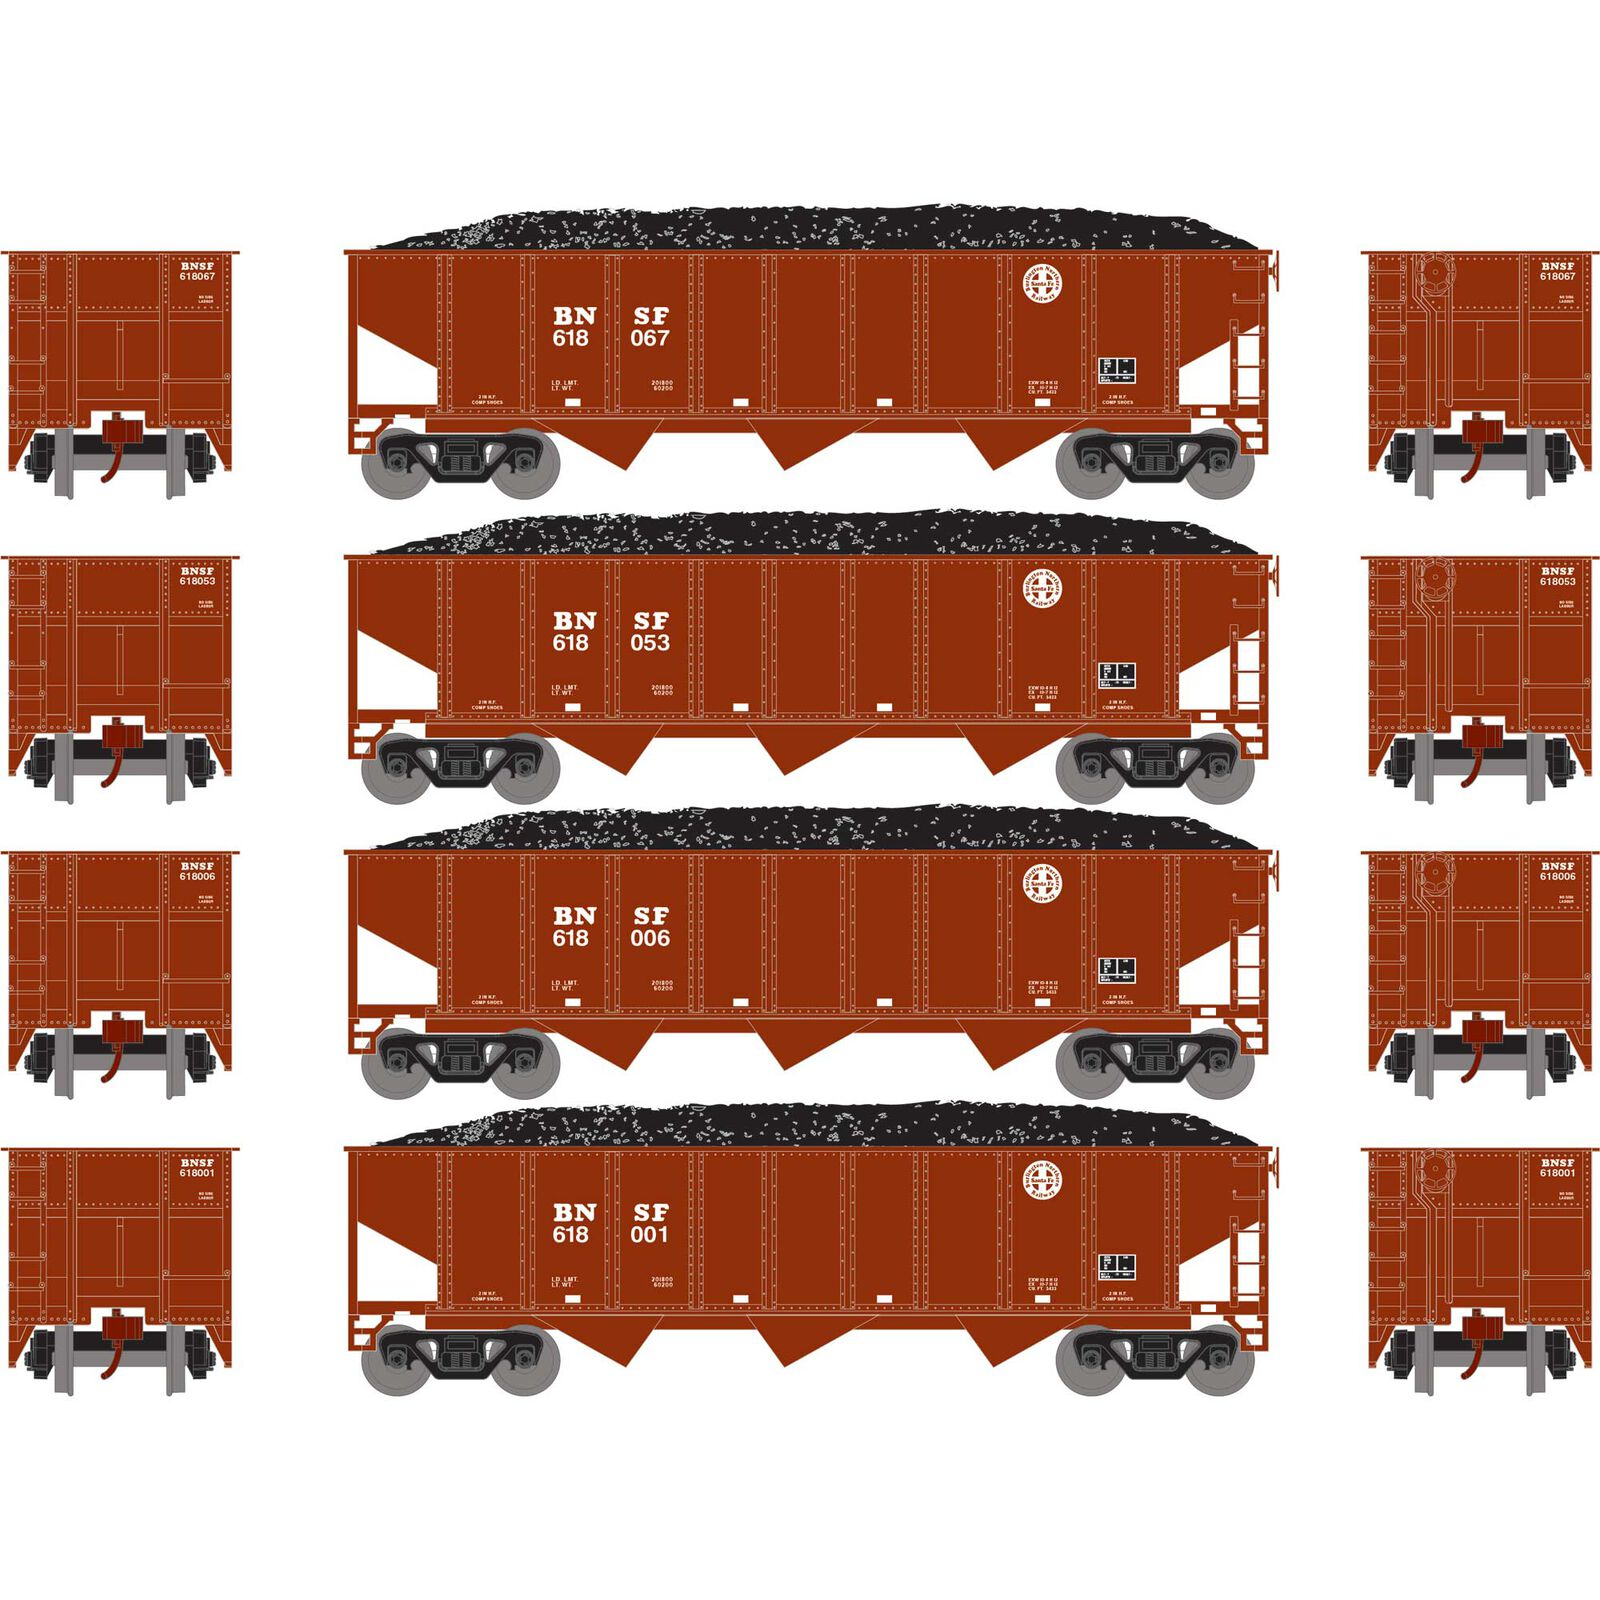 N 40' 3-Bay Ribbed Hopper with Load, BNSF #1 (4)